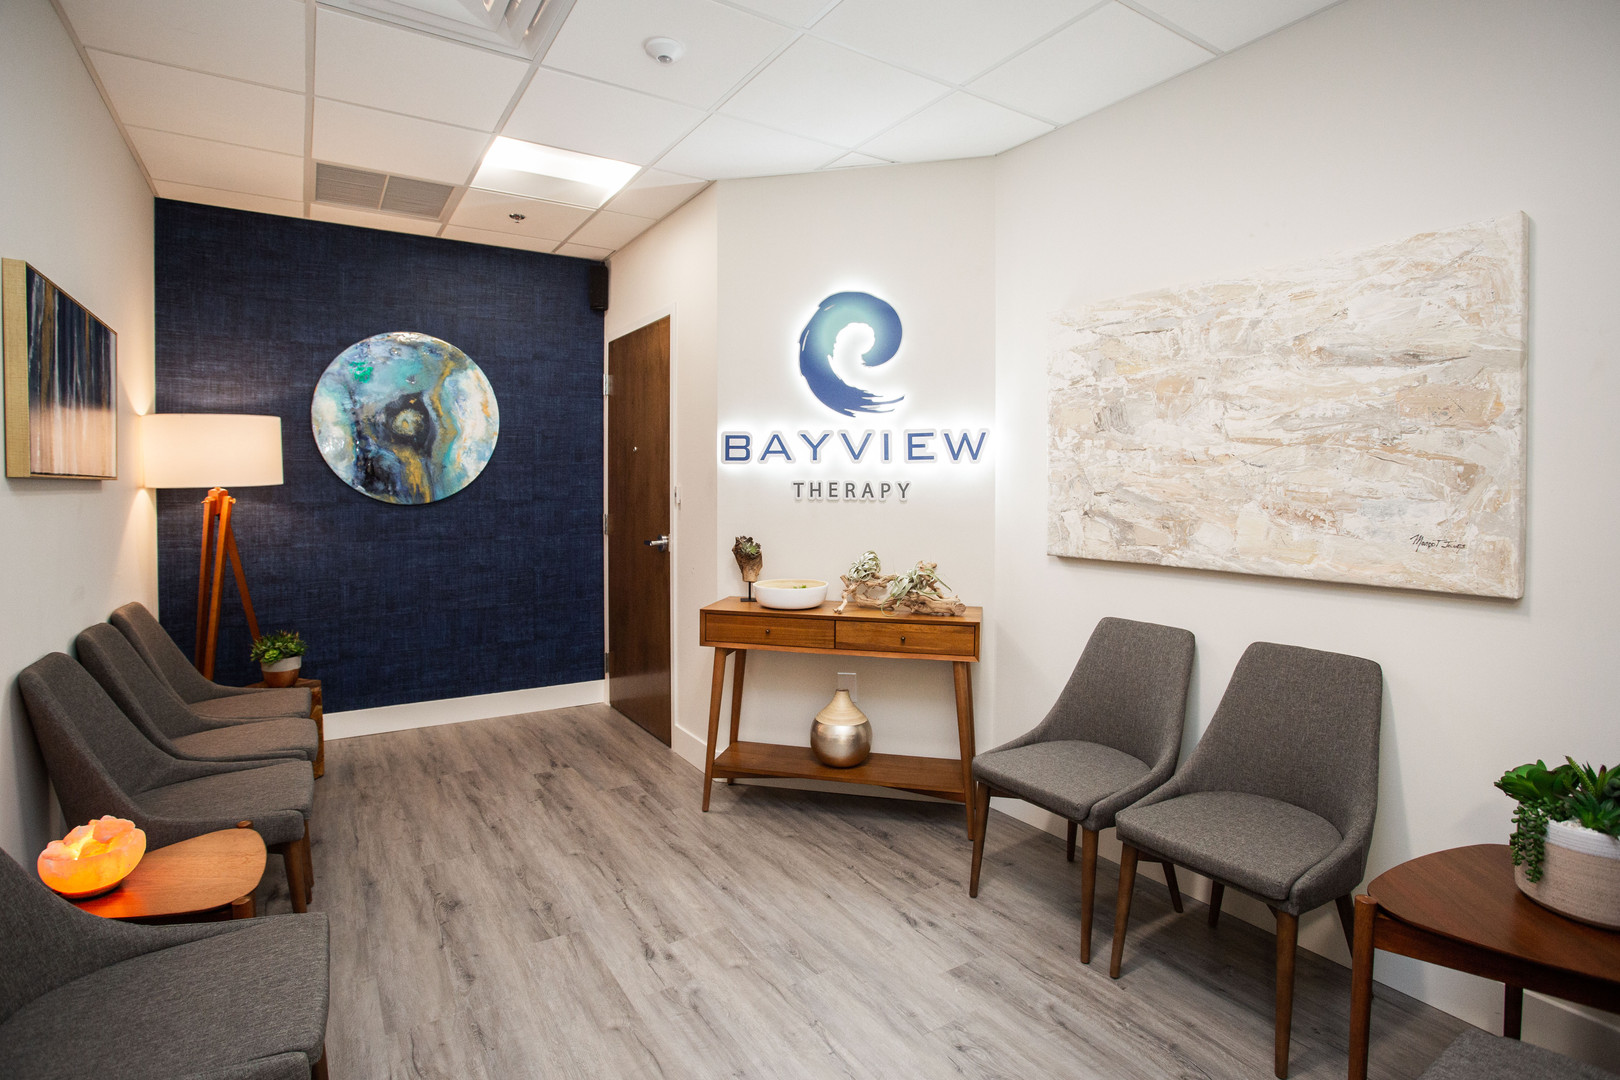 Bayview Therapy Lobby 1.JPG